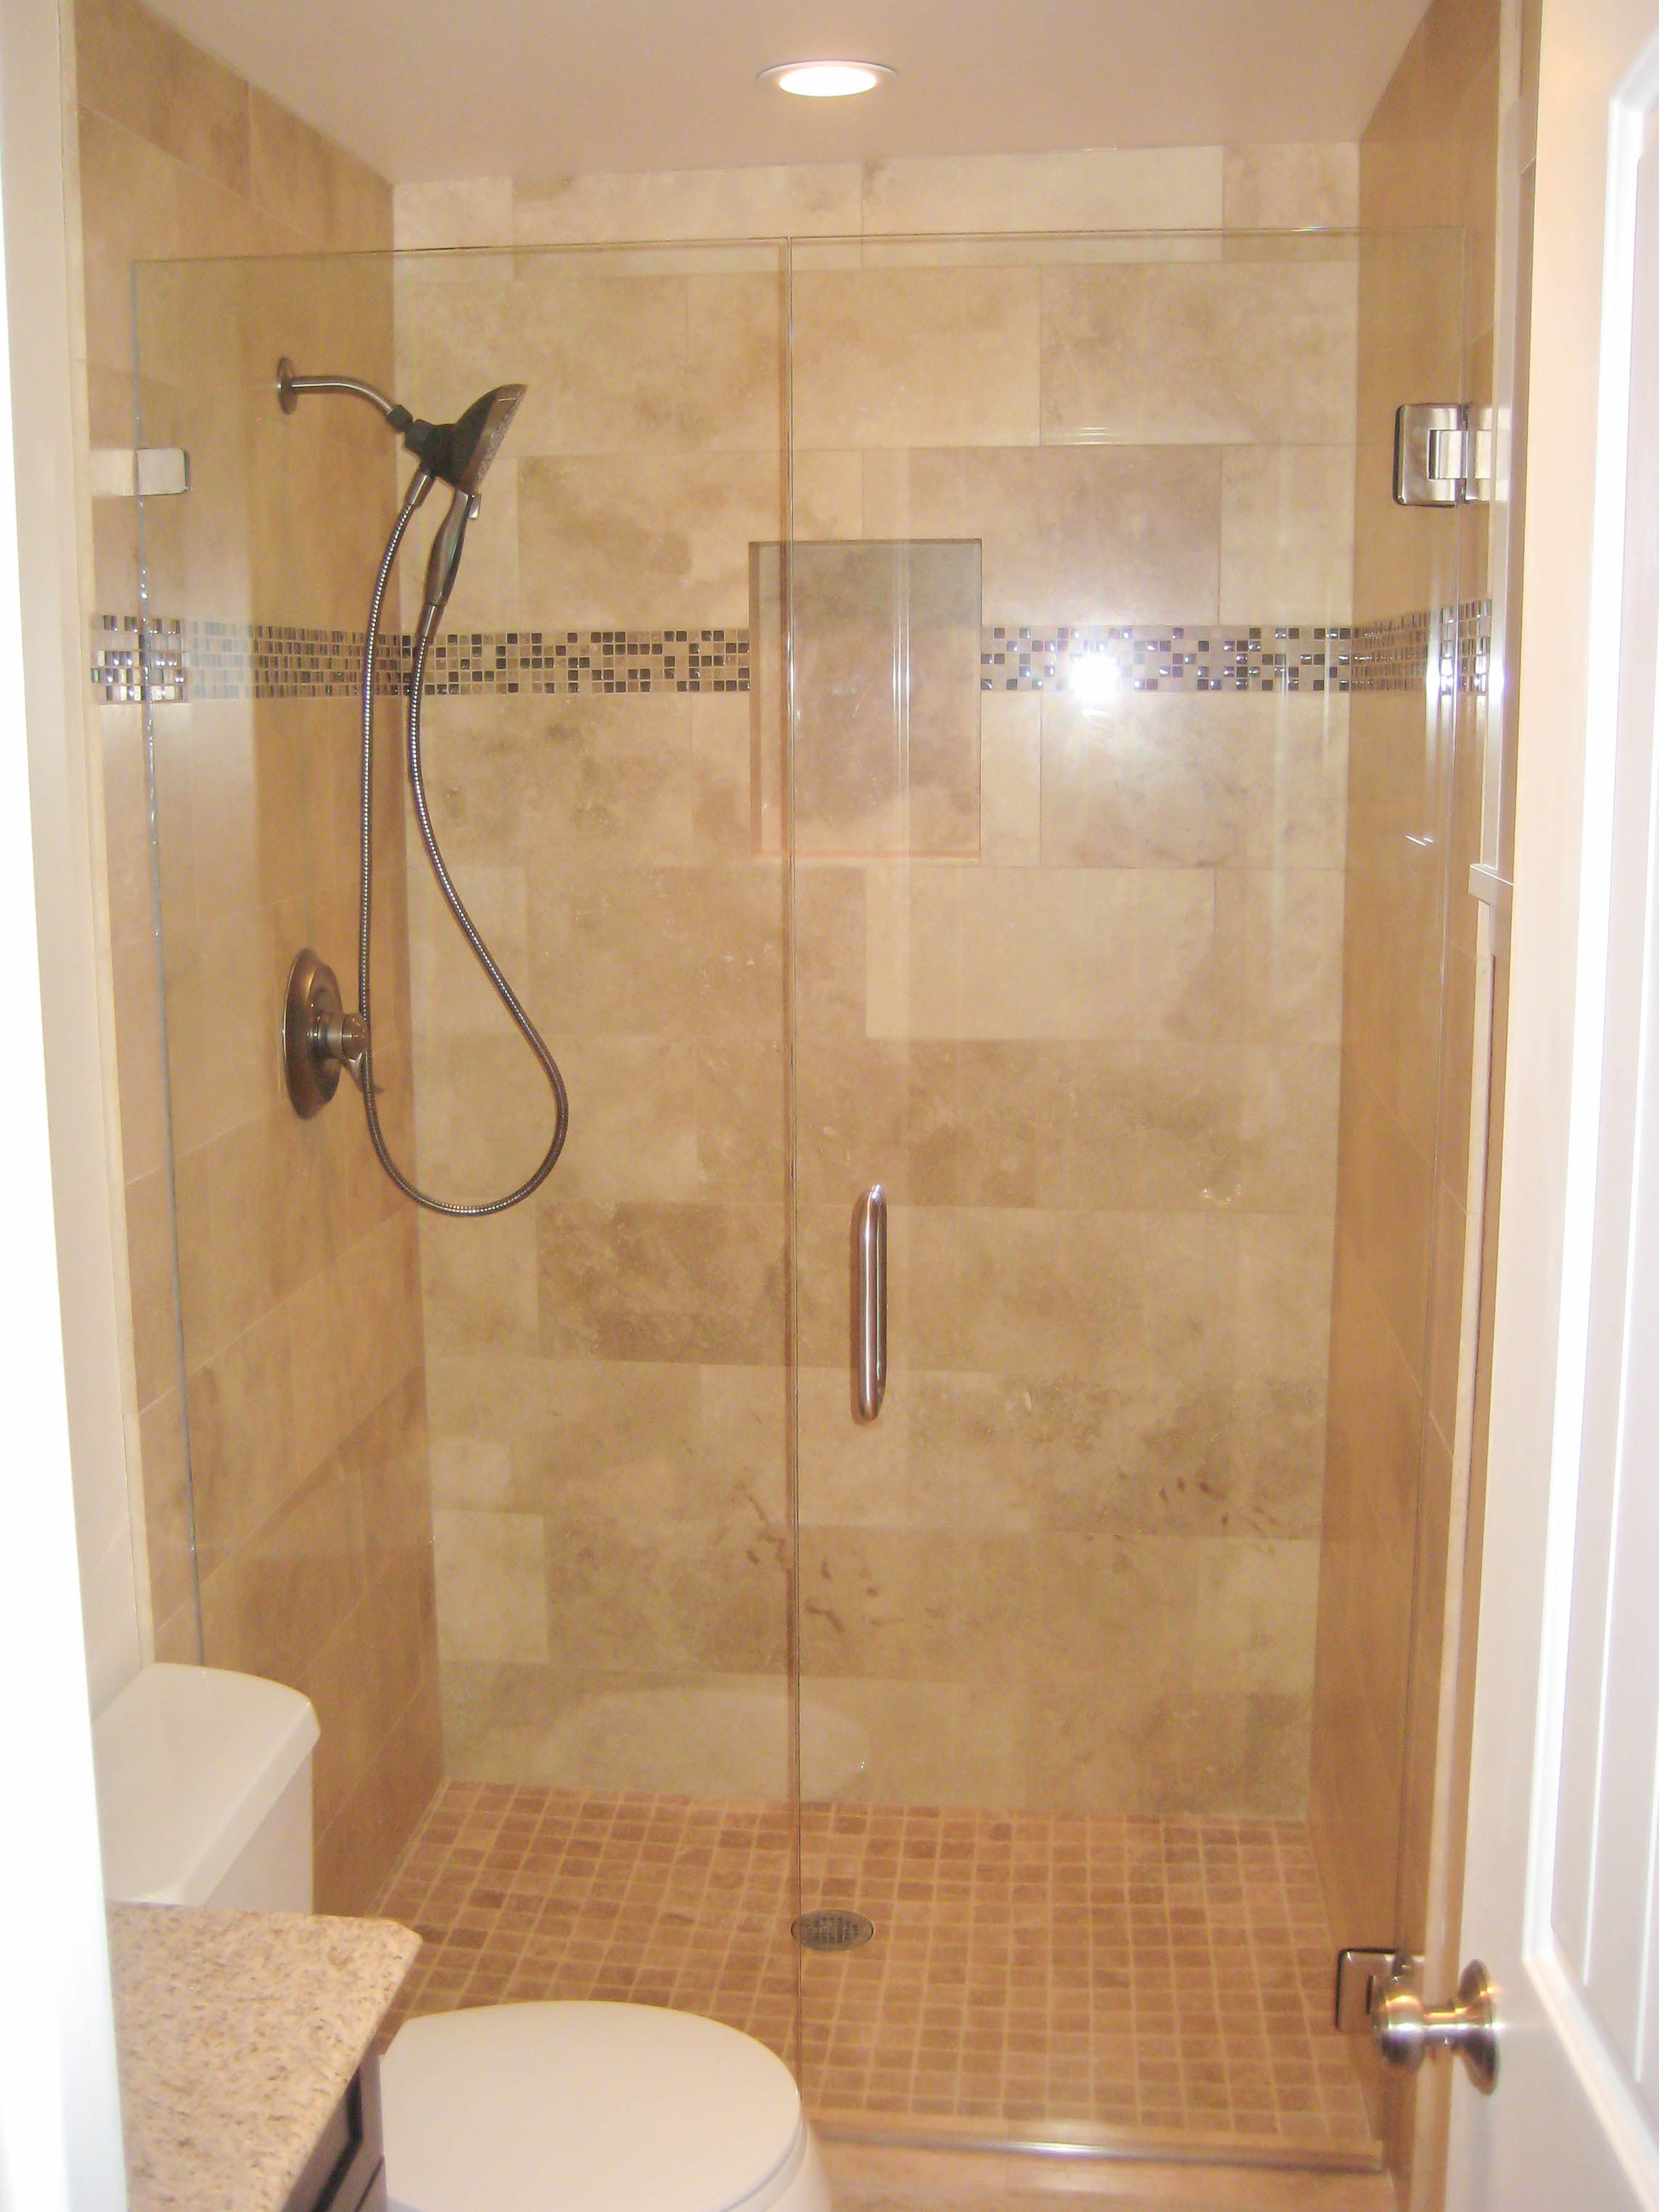 Bathroom Showers Photos Seattle Tile Contractor IRC Tile Services - Bathroom shower